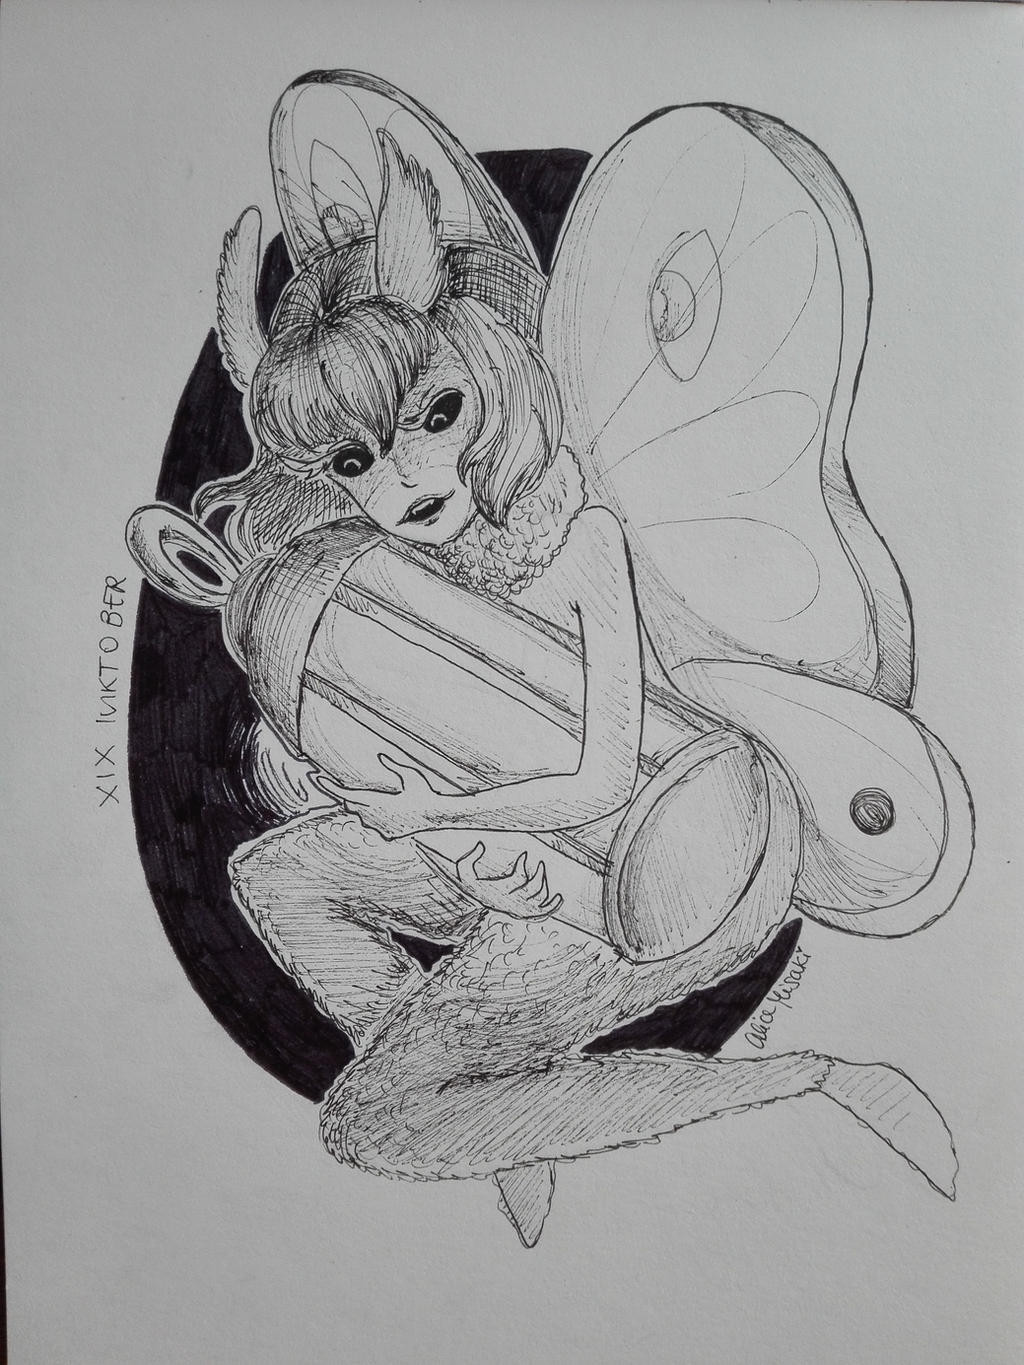 xix_inktober_2018___moth_by_alicemisakii